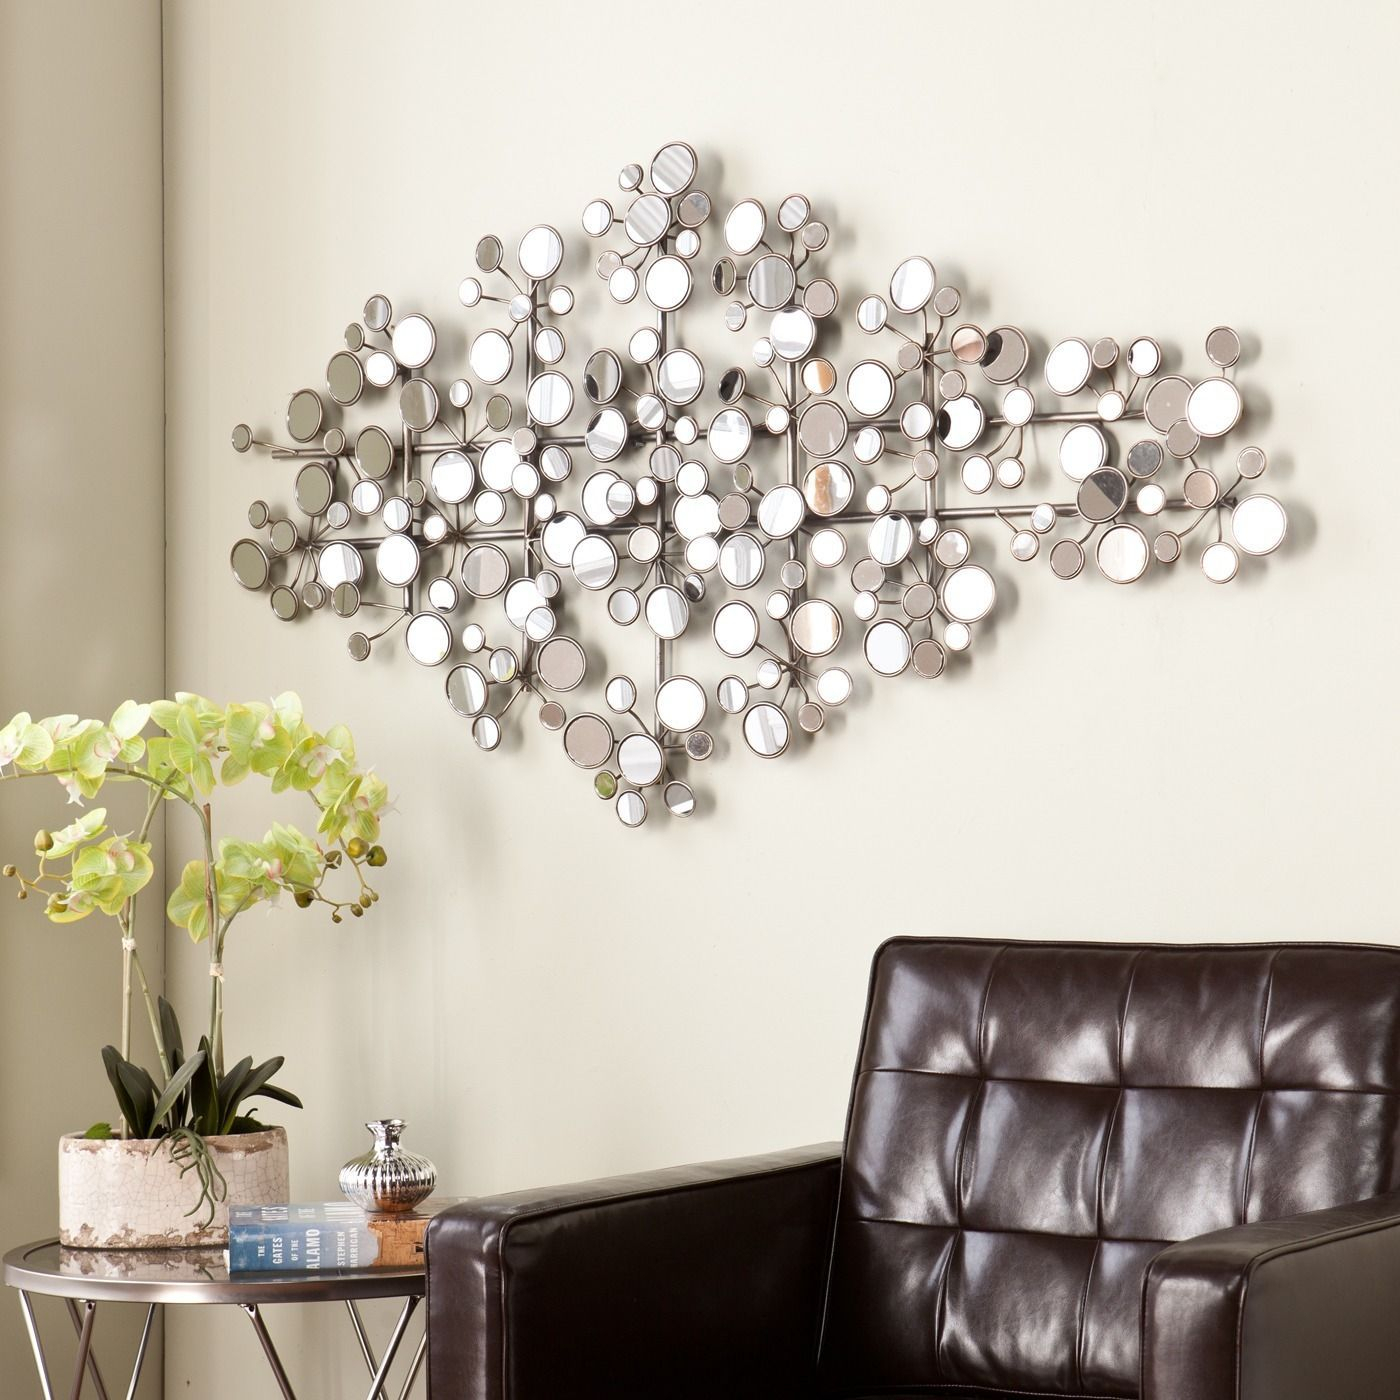 This Upton Home Olivia Mirrored Metal Wall Sculpture within Alvis Traditional Metal Wall Decor (Image 27 of 30)